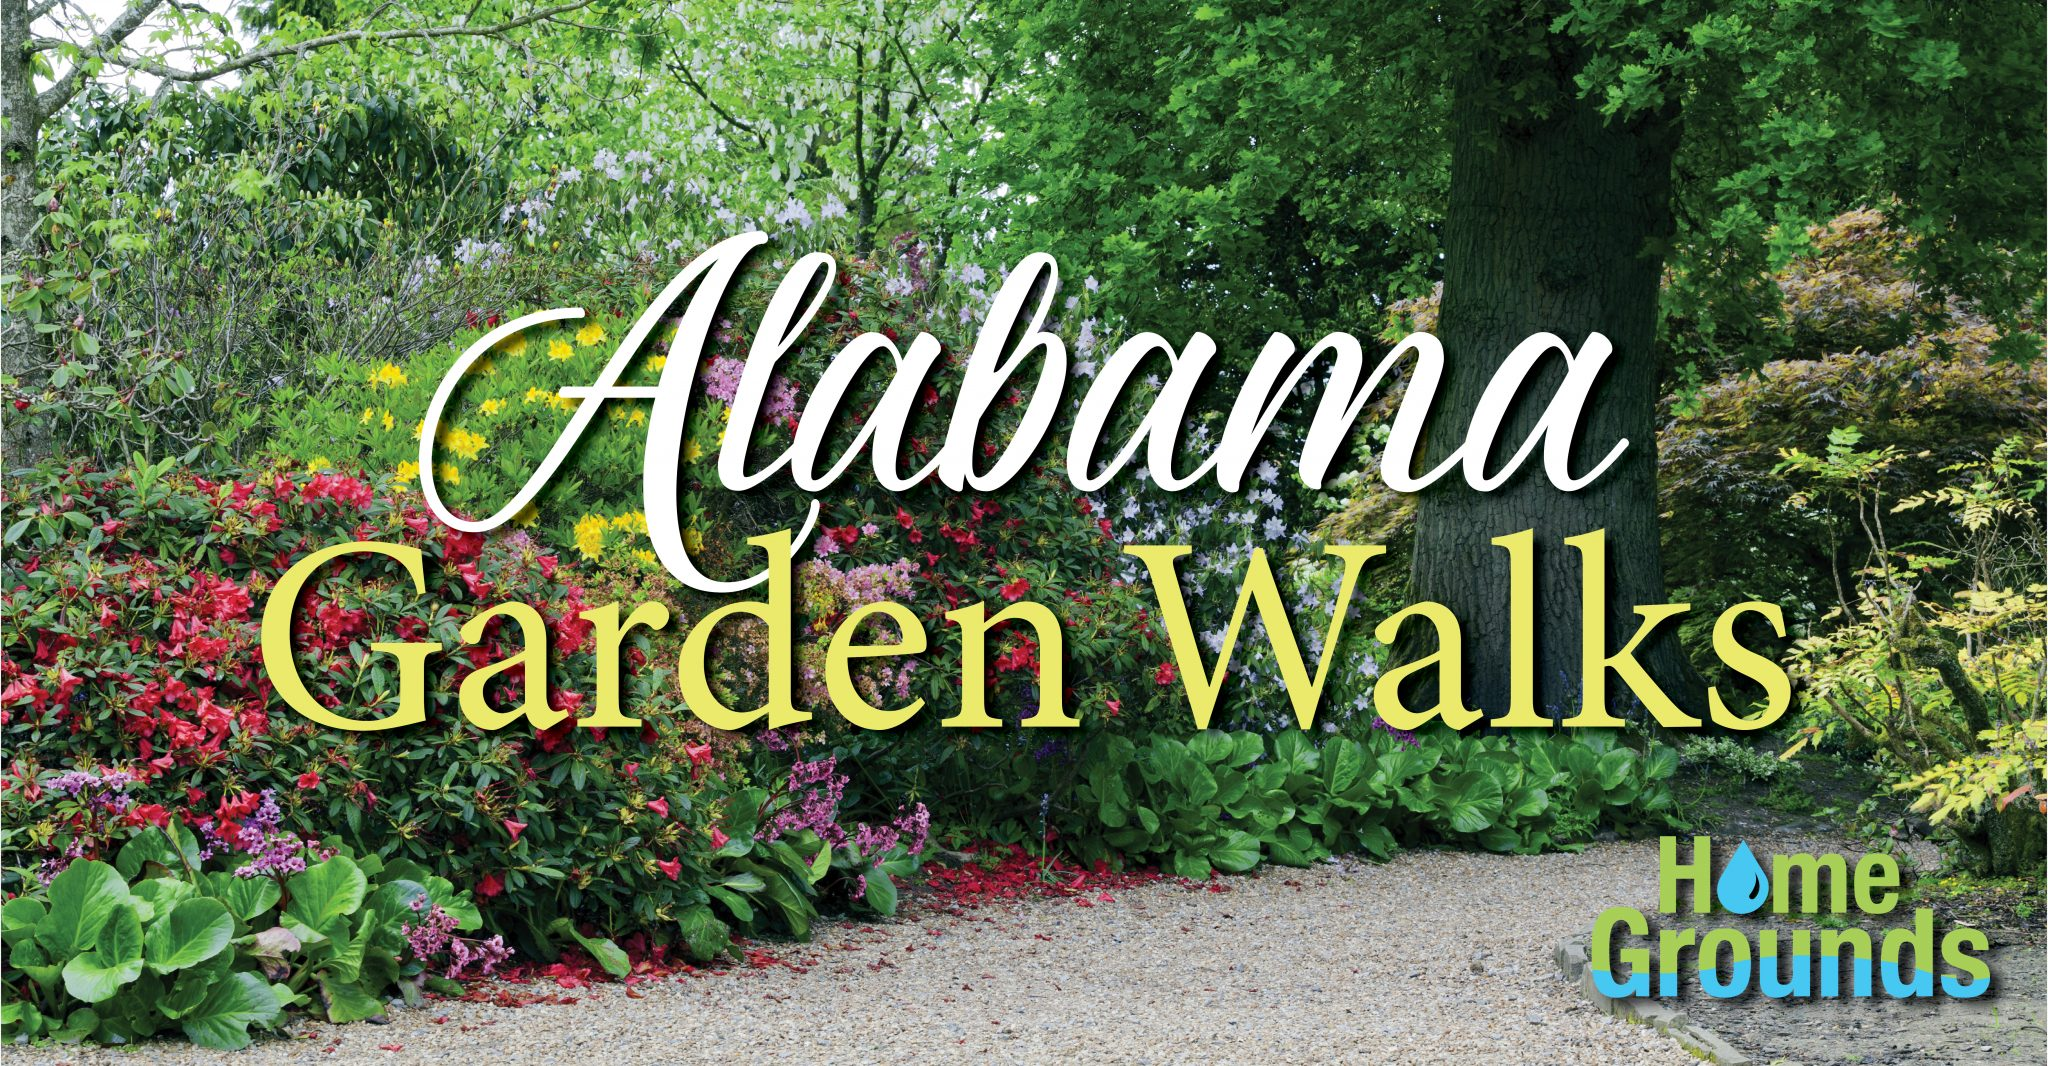 Colourful rhododendrons, azaleas in bloom on a walking path by an oak tree, in a spring lush garden